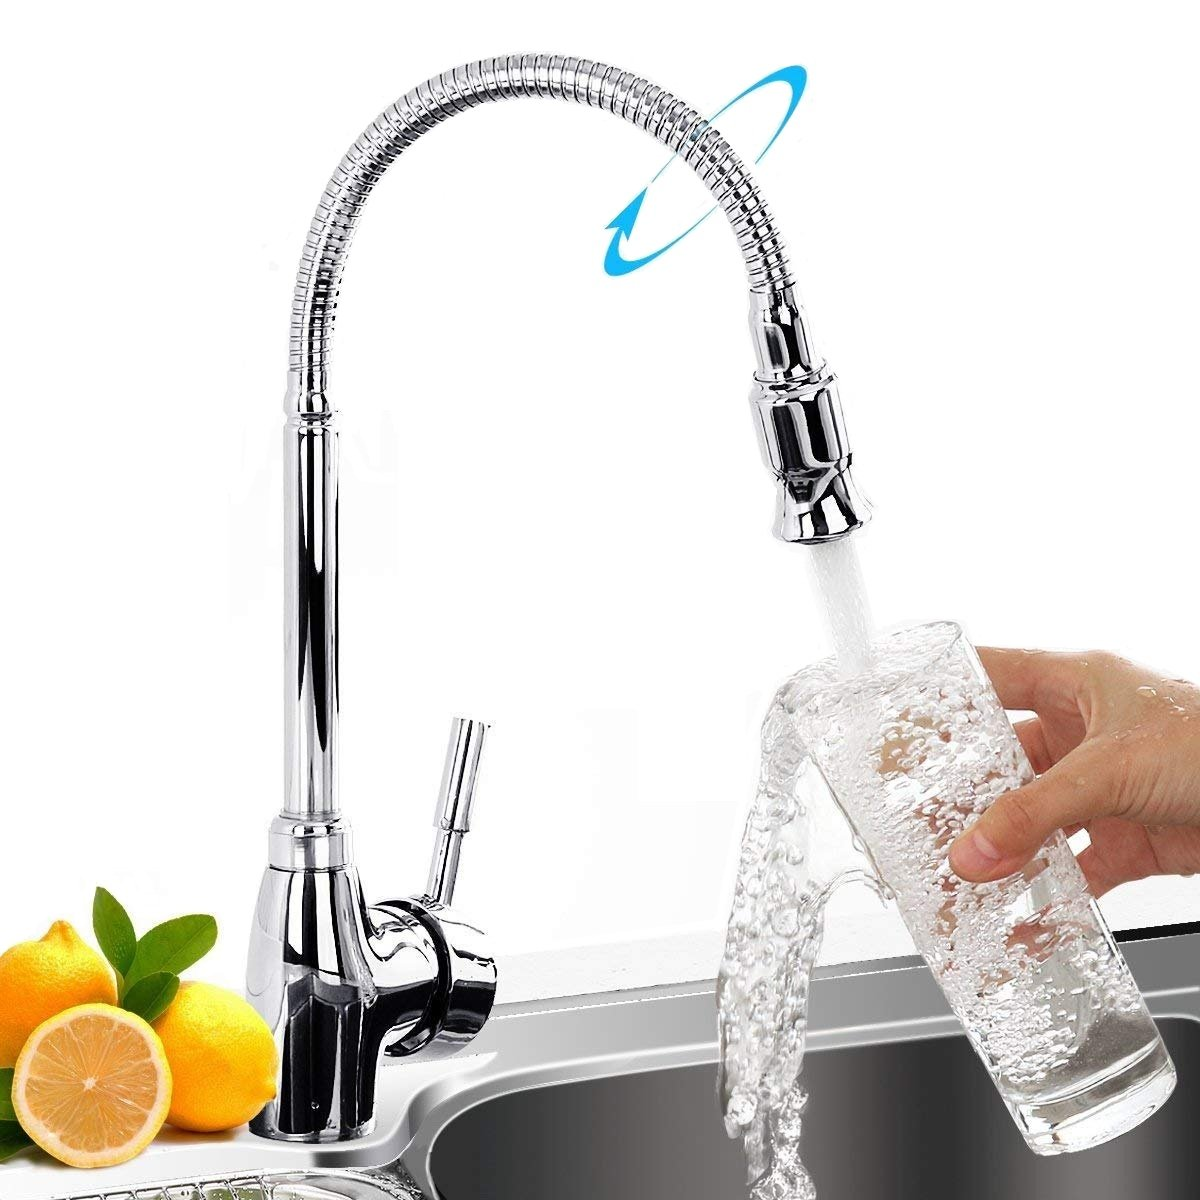 Kitchen Faucet, Baban Single Handle Kitchen Tap 360 Degree Swivel Modern Stainless Steel Sink Faucet with 720° Universal Goose Neck, Hot and Cold Mixer Faucet Bar Sink Faucet Chrome Plated